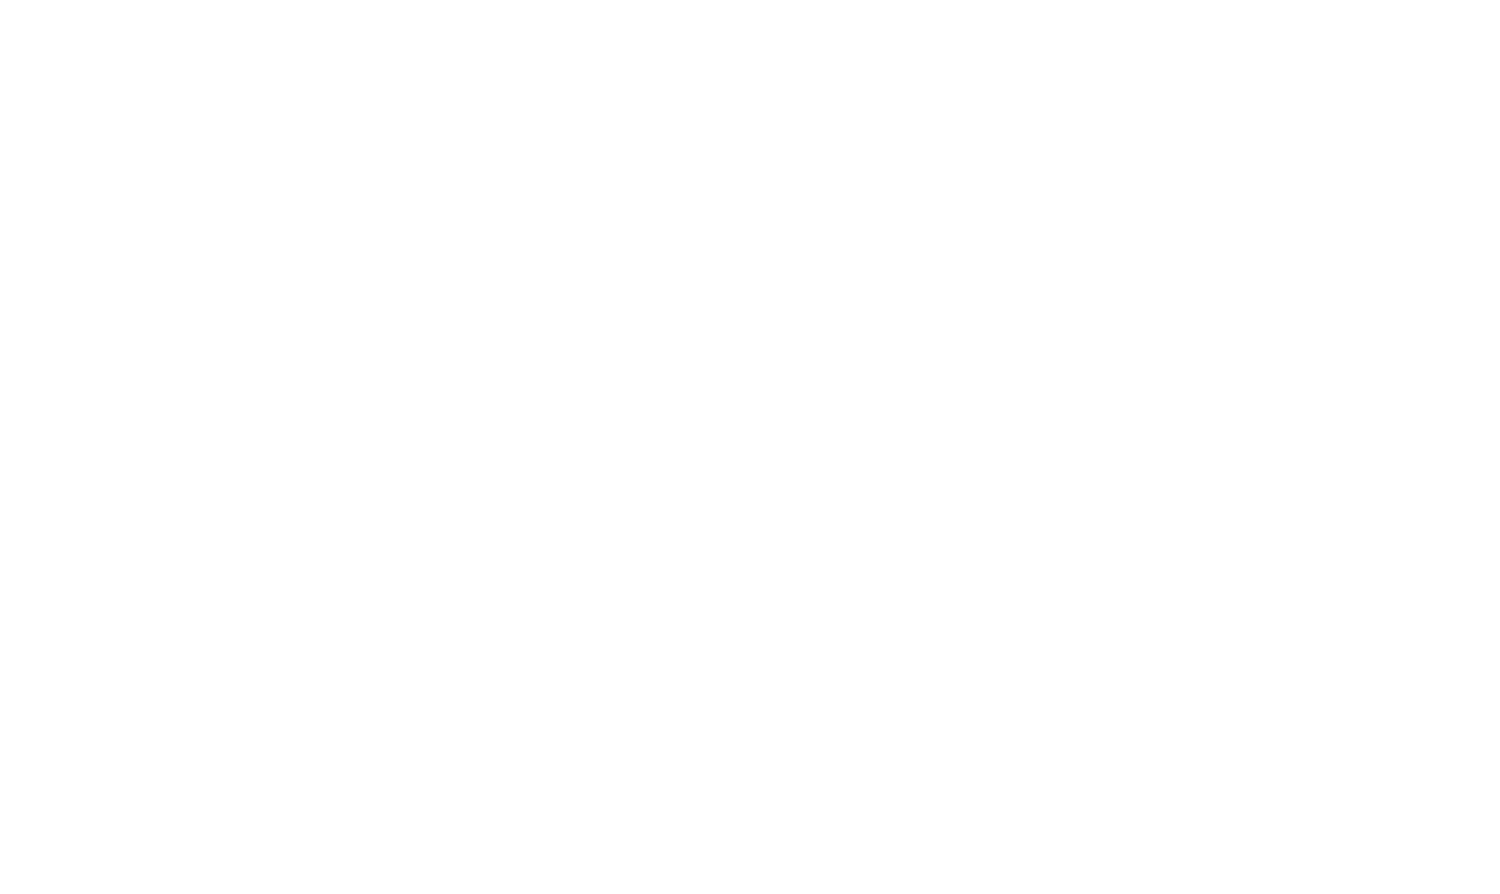 Boothbay Food & Music Festival